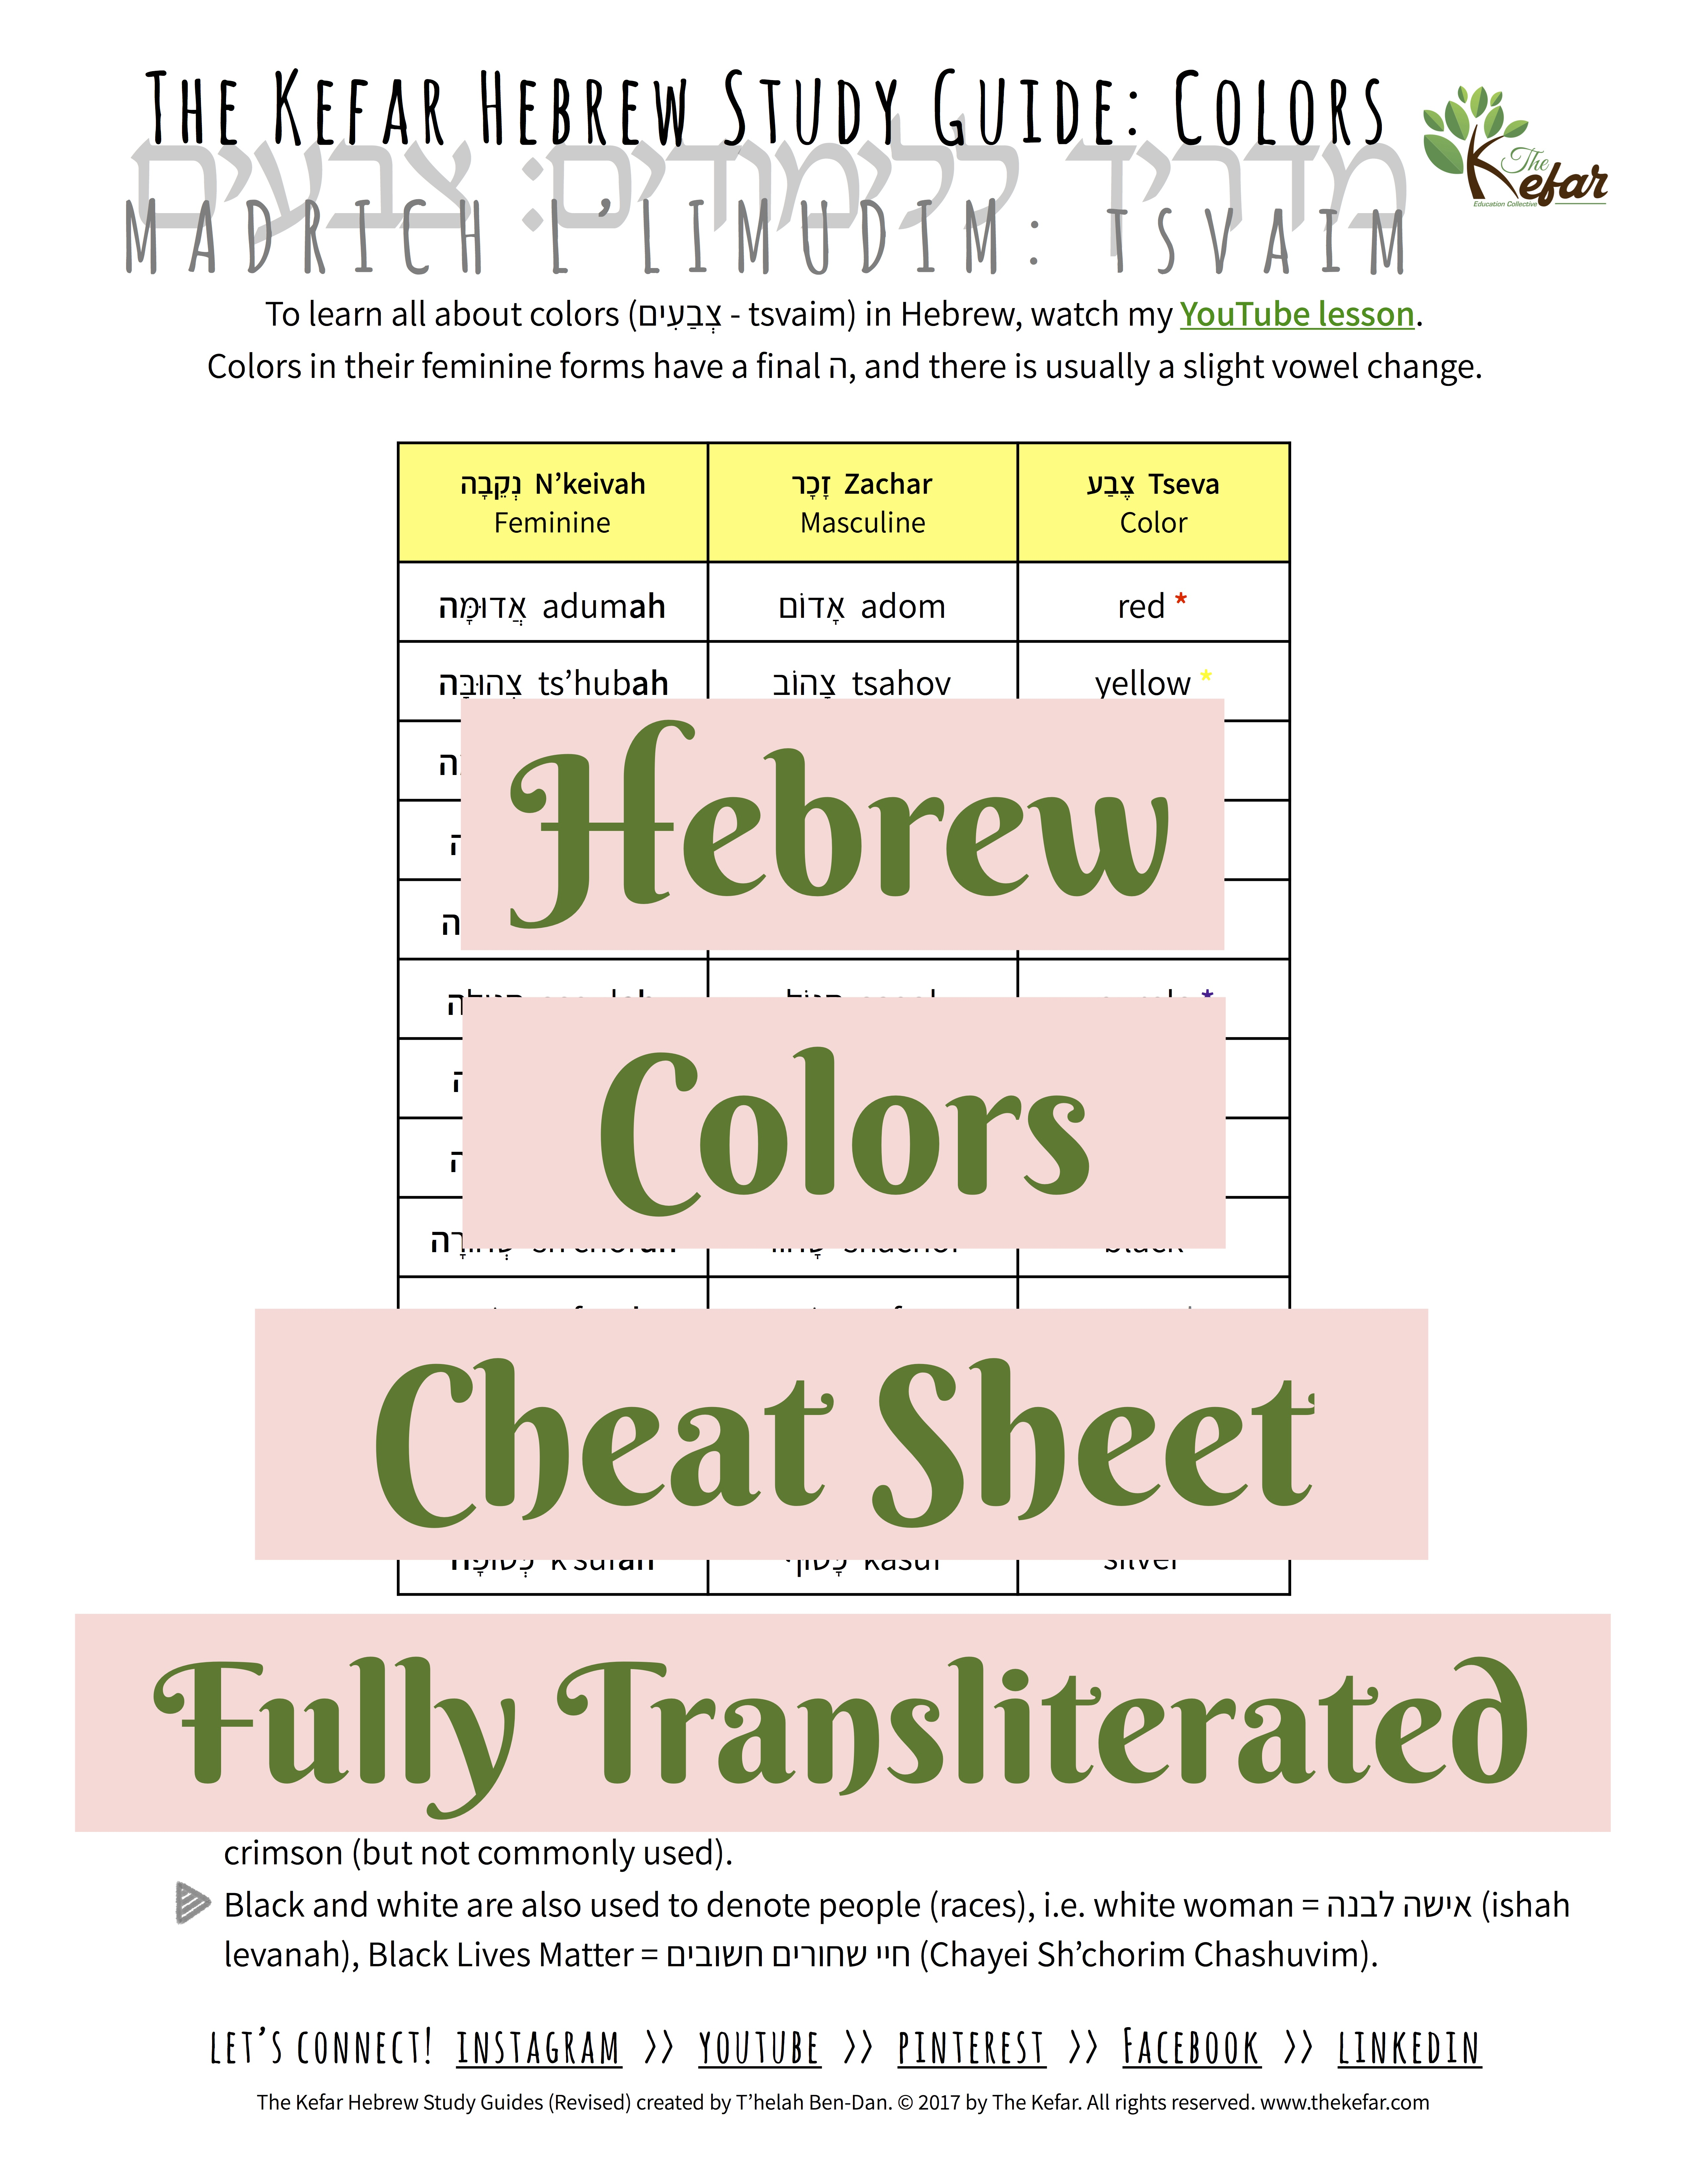 Hebrew Colors Cheat Sheet Fully Transliterated